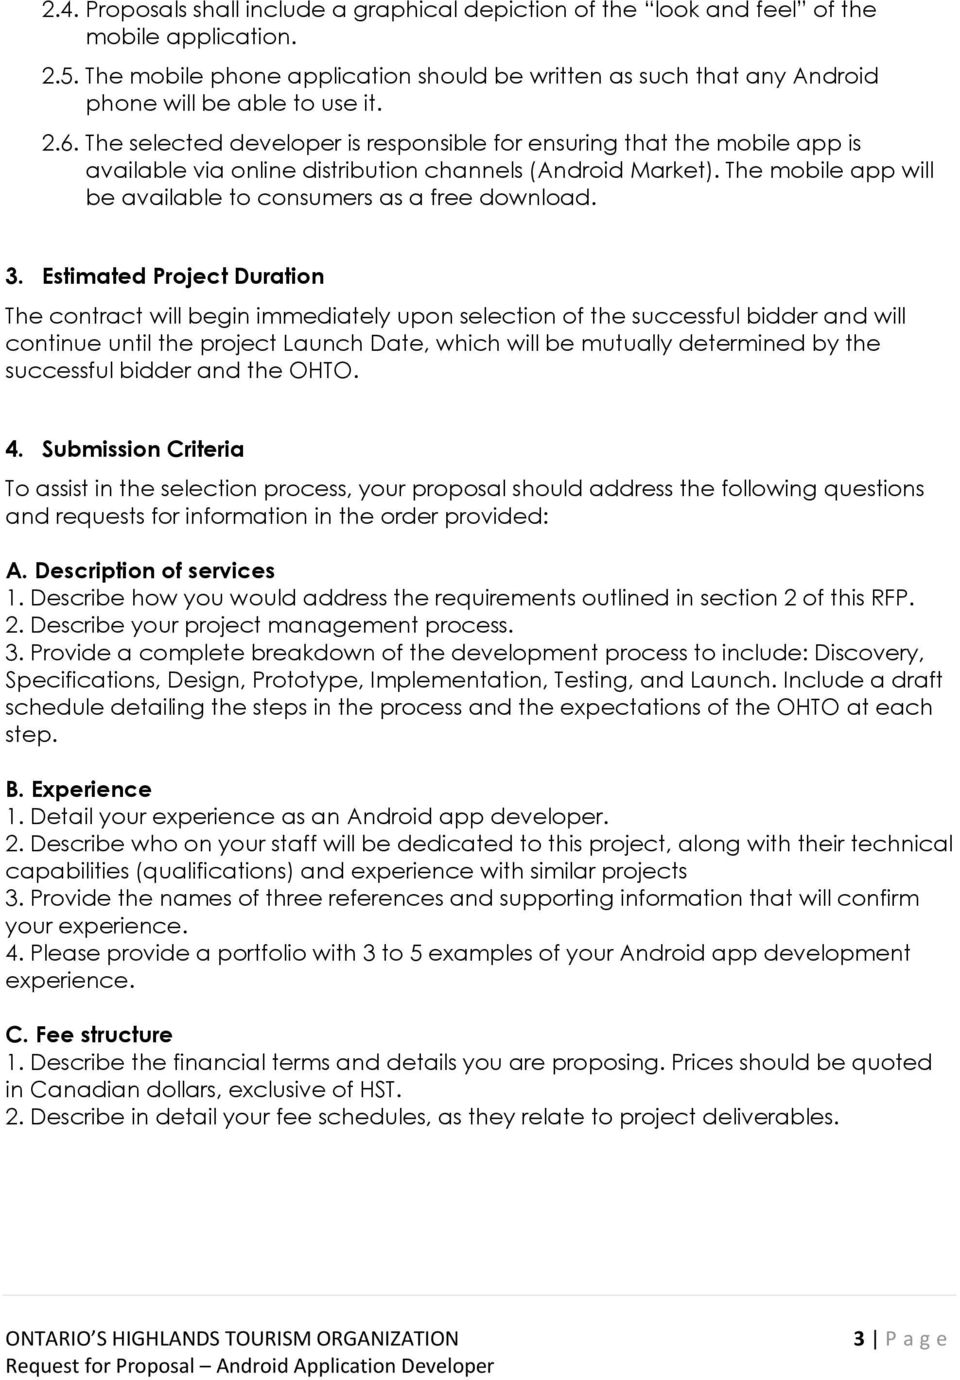 Request for Proposal Android Application Developer - PDF